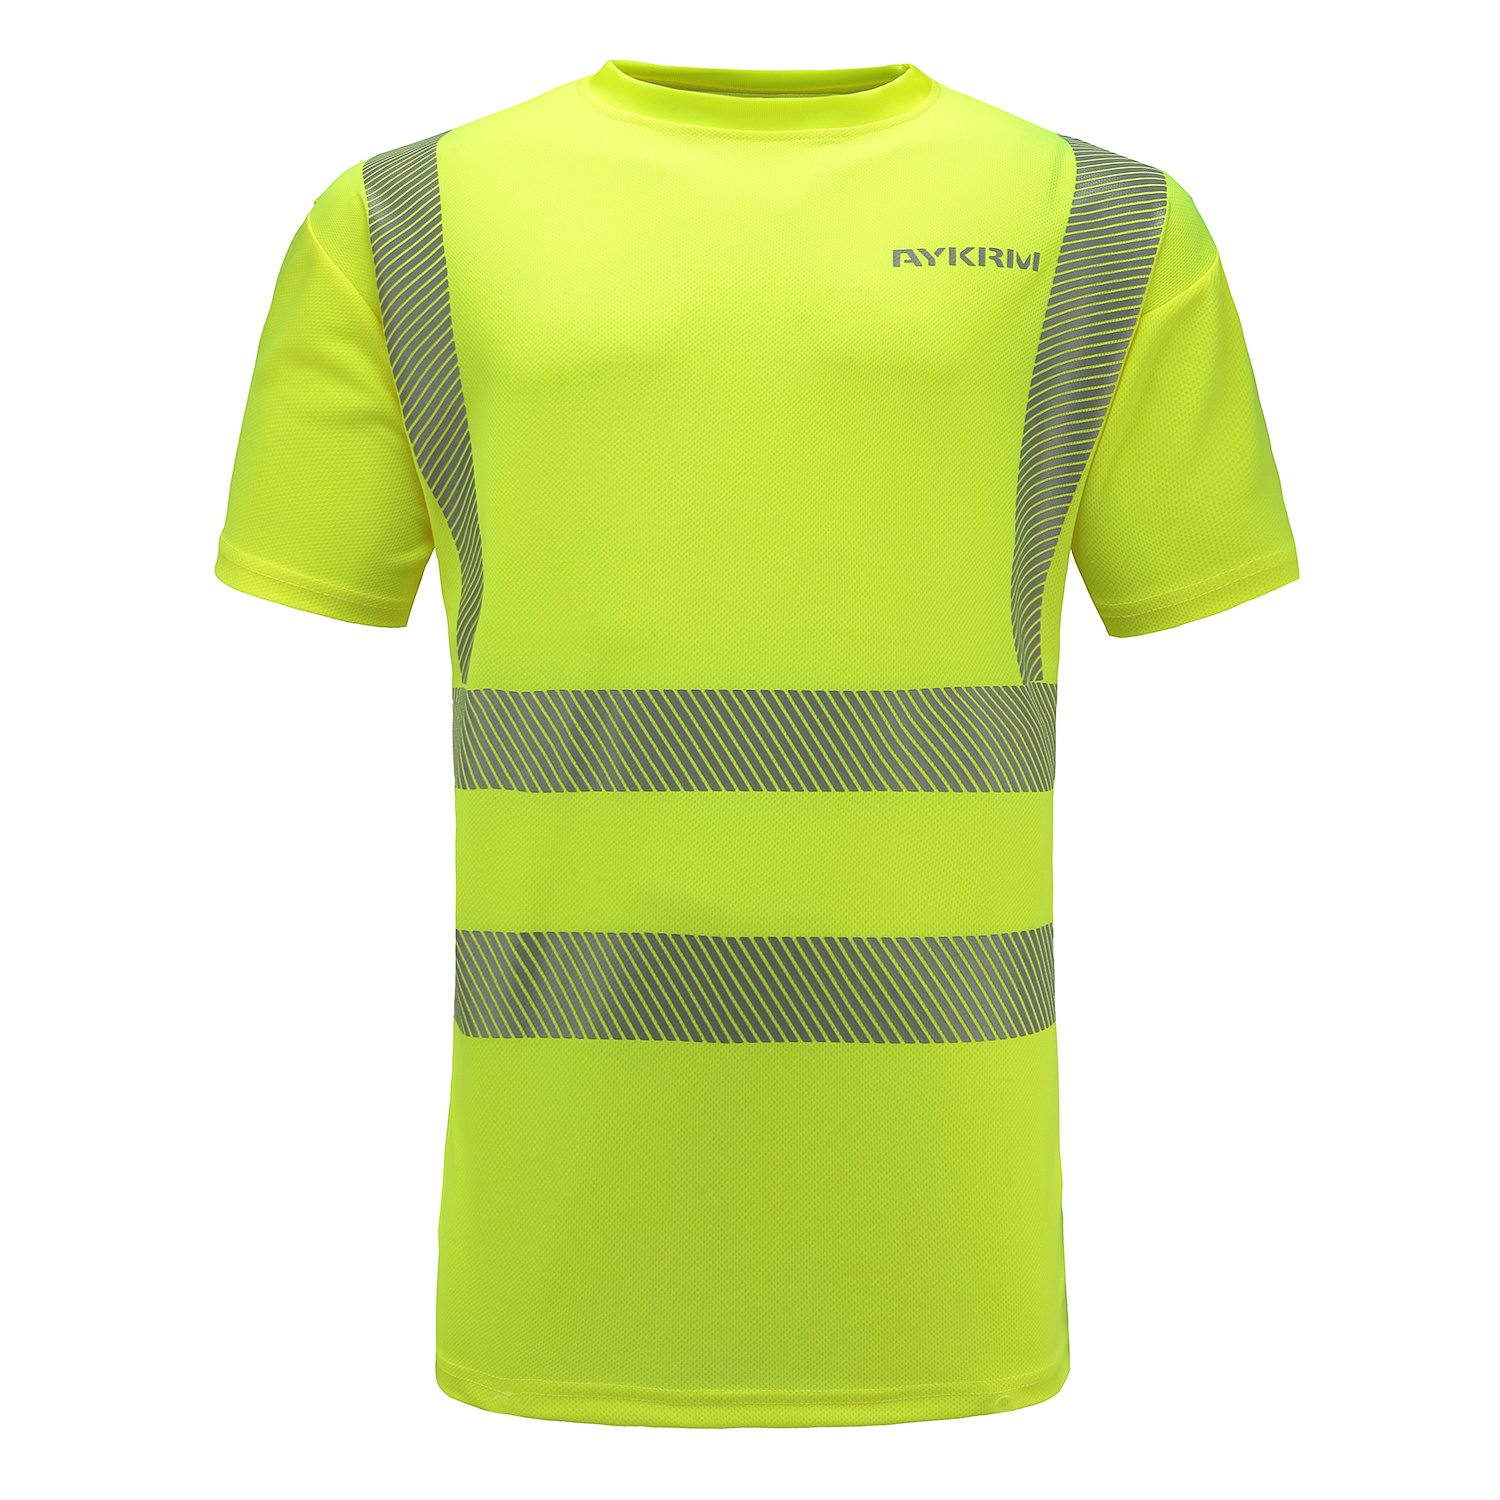 AYKRM Hi Viz VIS High Visibility t Shirt Reflective Tape Safety Security Work T-Shirt Breathable Lightweight Double Tape Workwear (M, yellow)